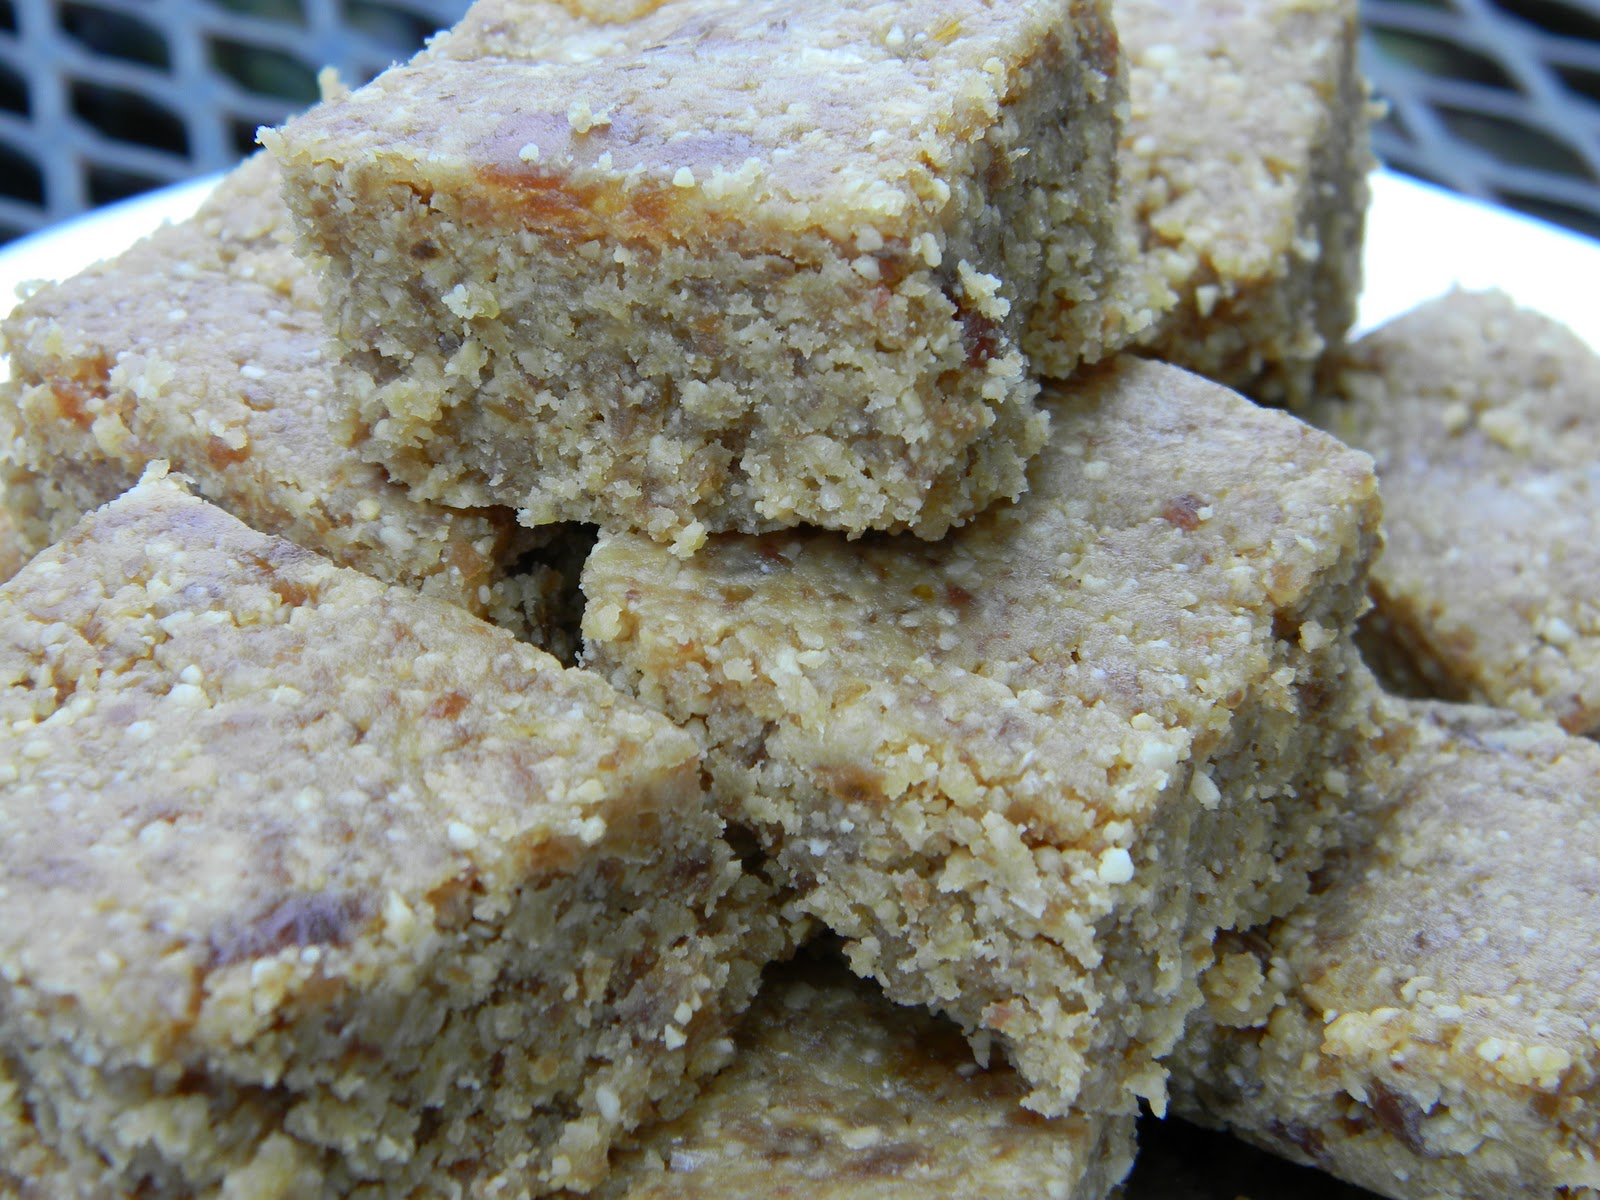 Food Sensitivity Journal: Gluten Free Peanut Date Bars